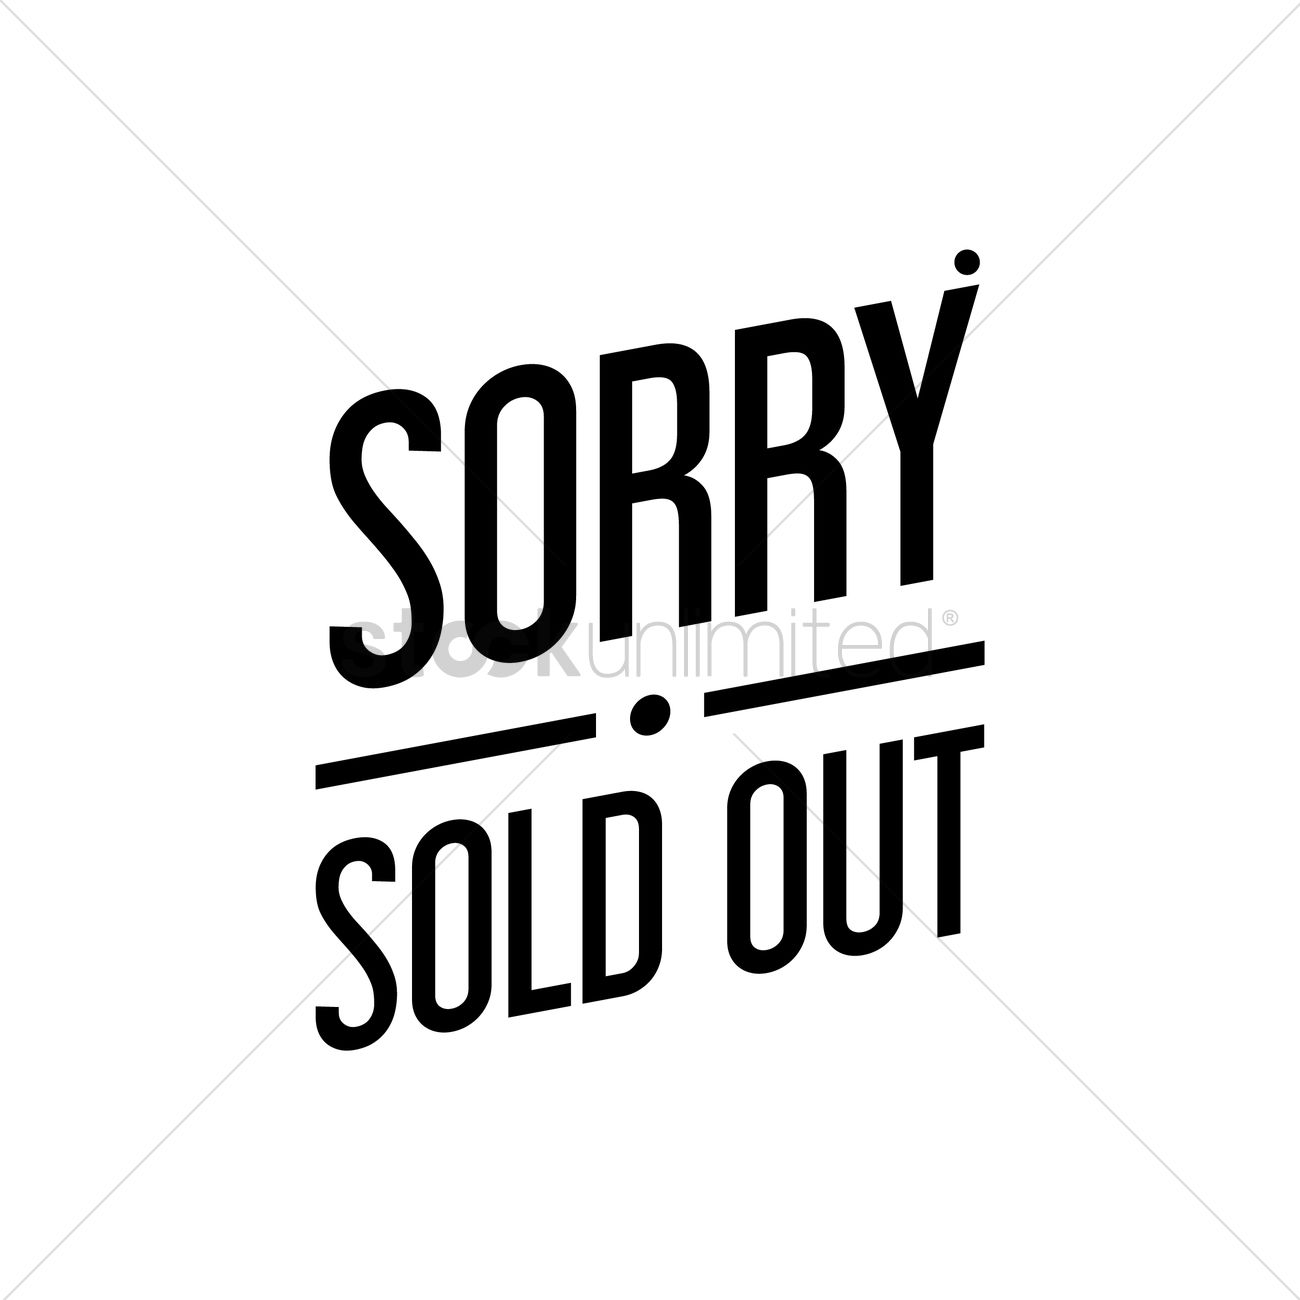 Sorry Sold Out Text Vector Image